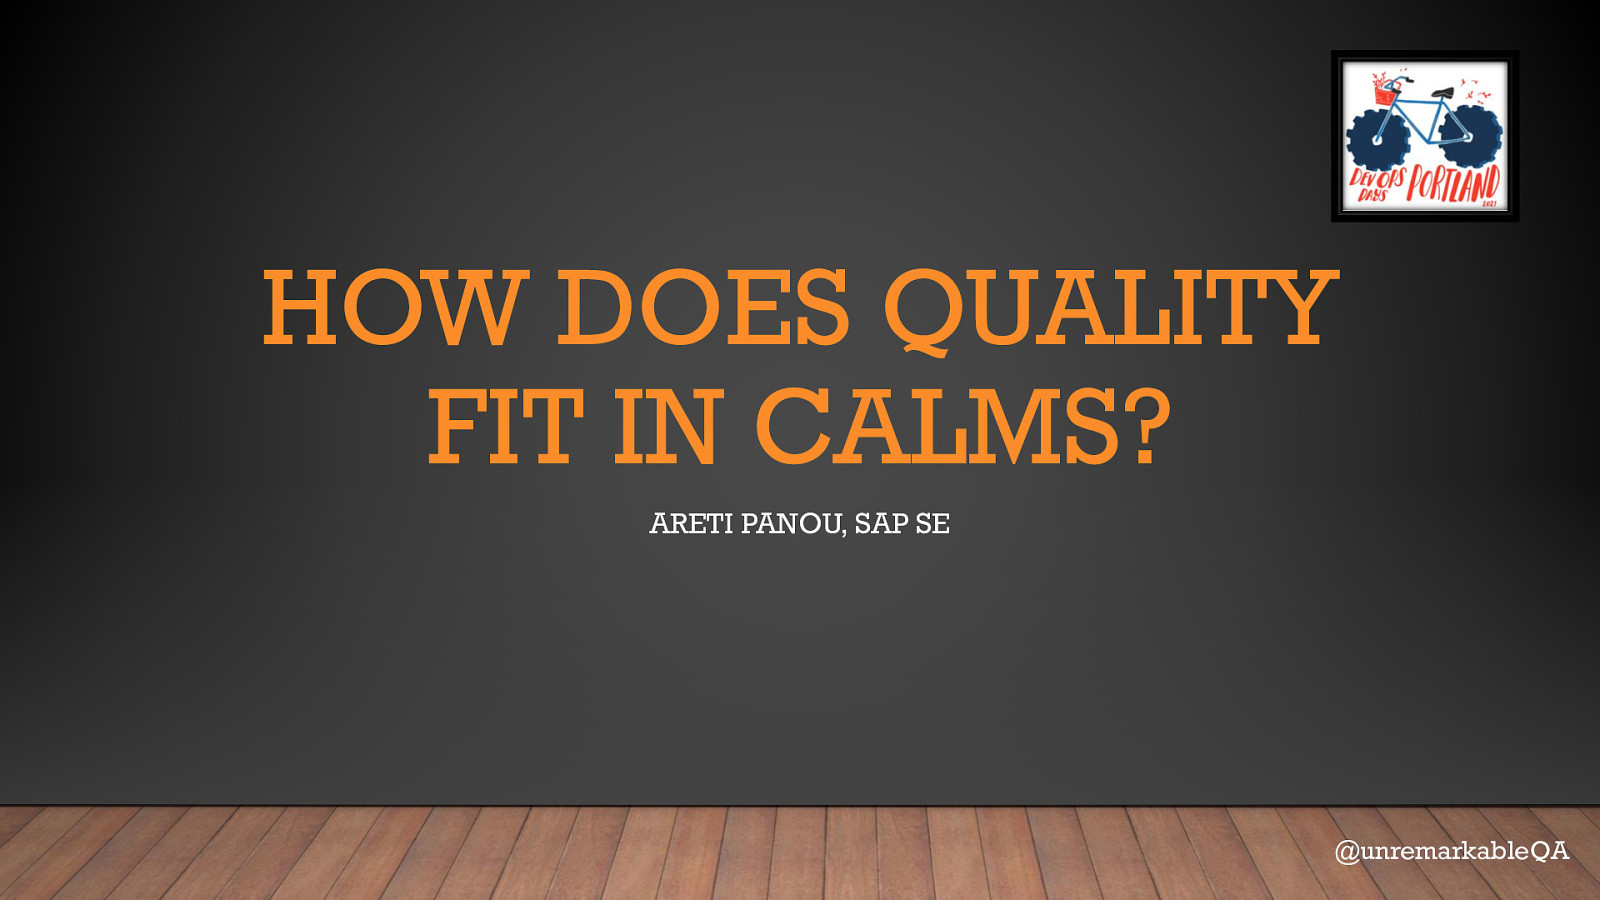 Where Does Quality fit in CALMS?